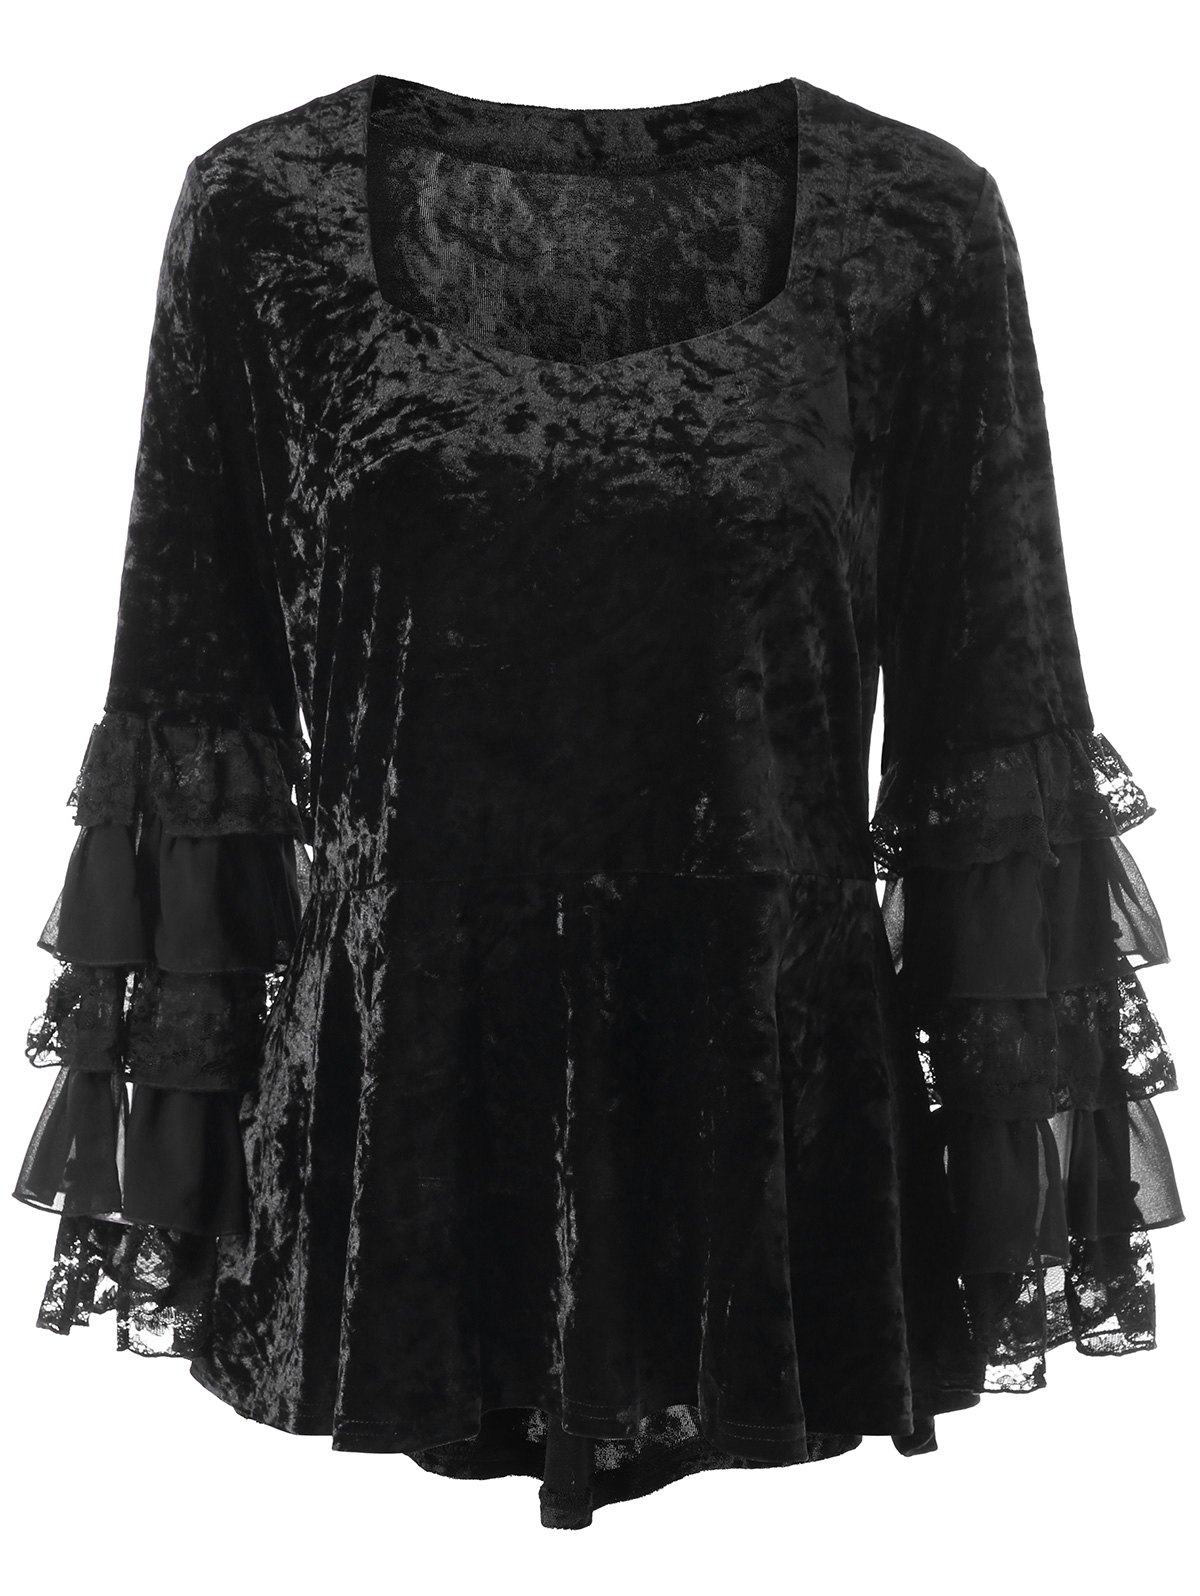 Affordable Halloween Plus Size Velvet Layered Sleeve Top